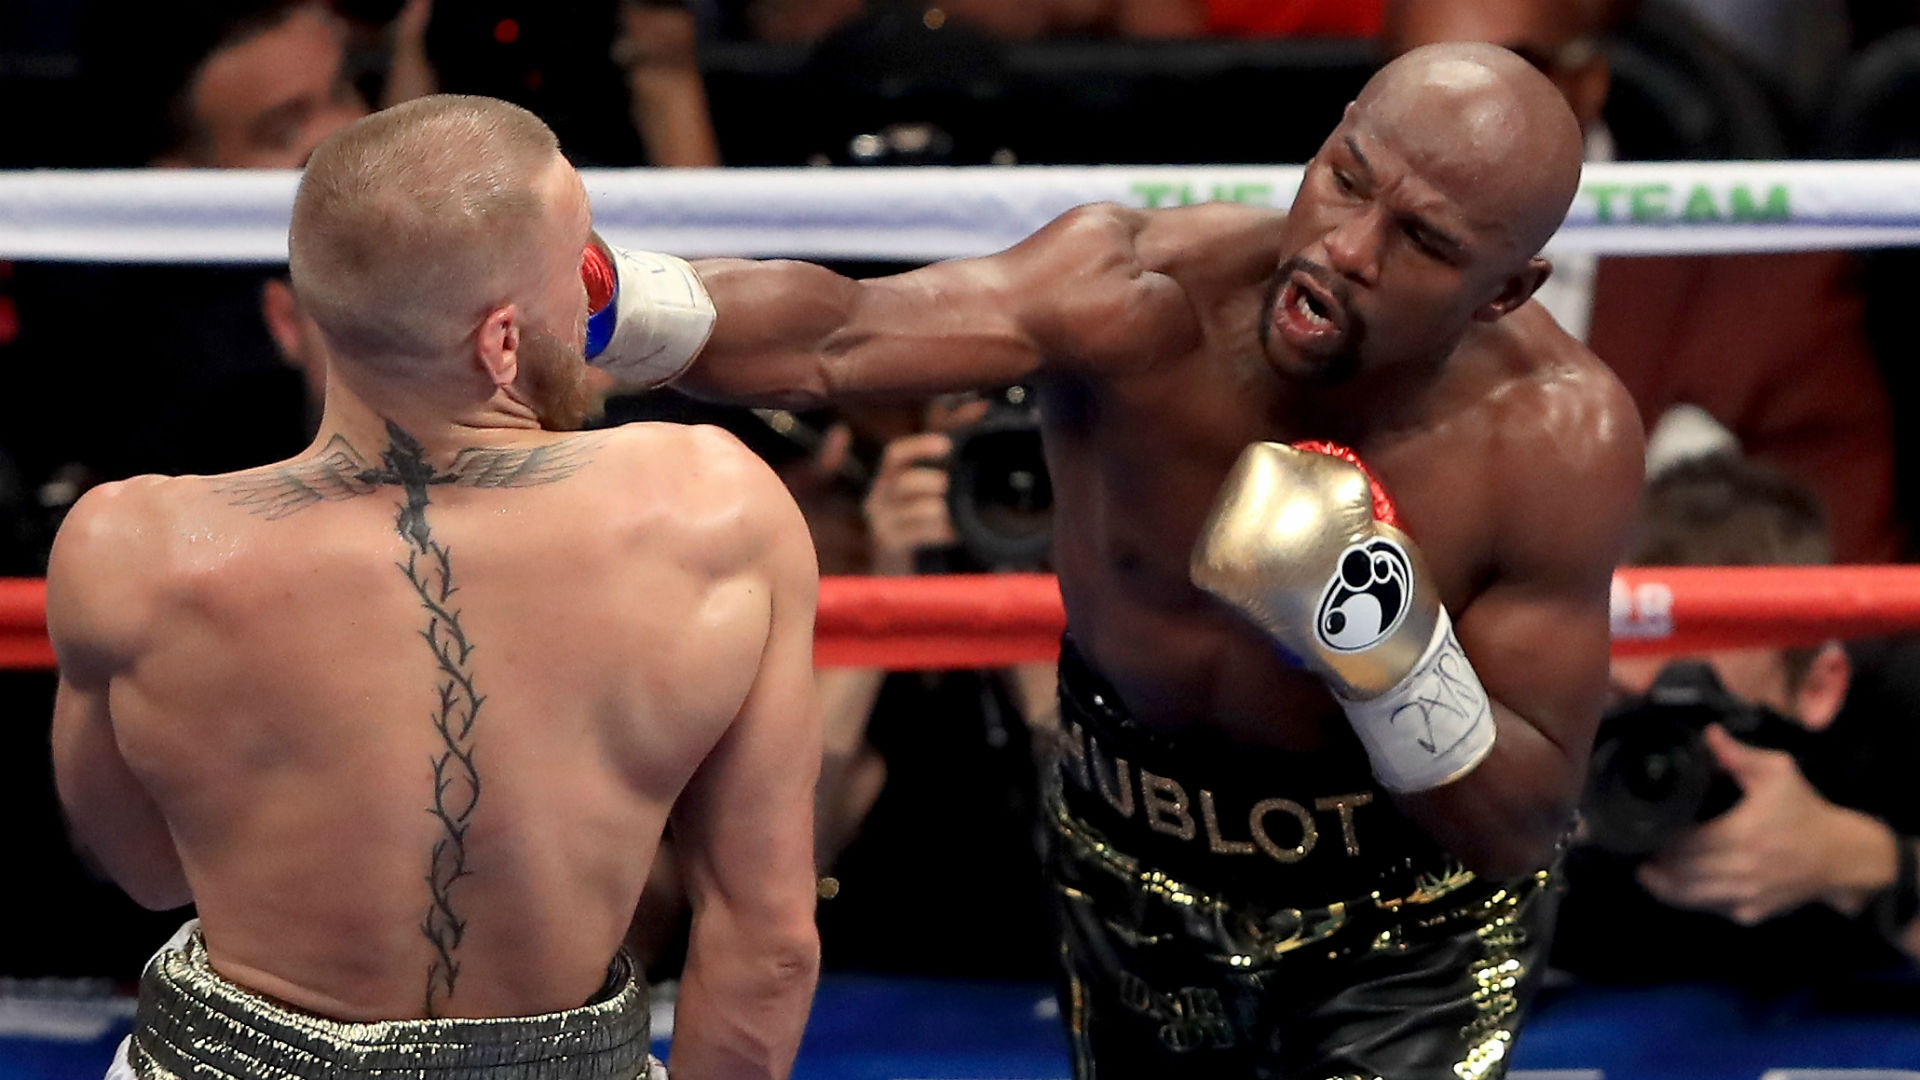 Mayweather coming out of retirement, promises 'spectacular event'